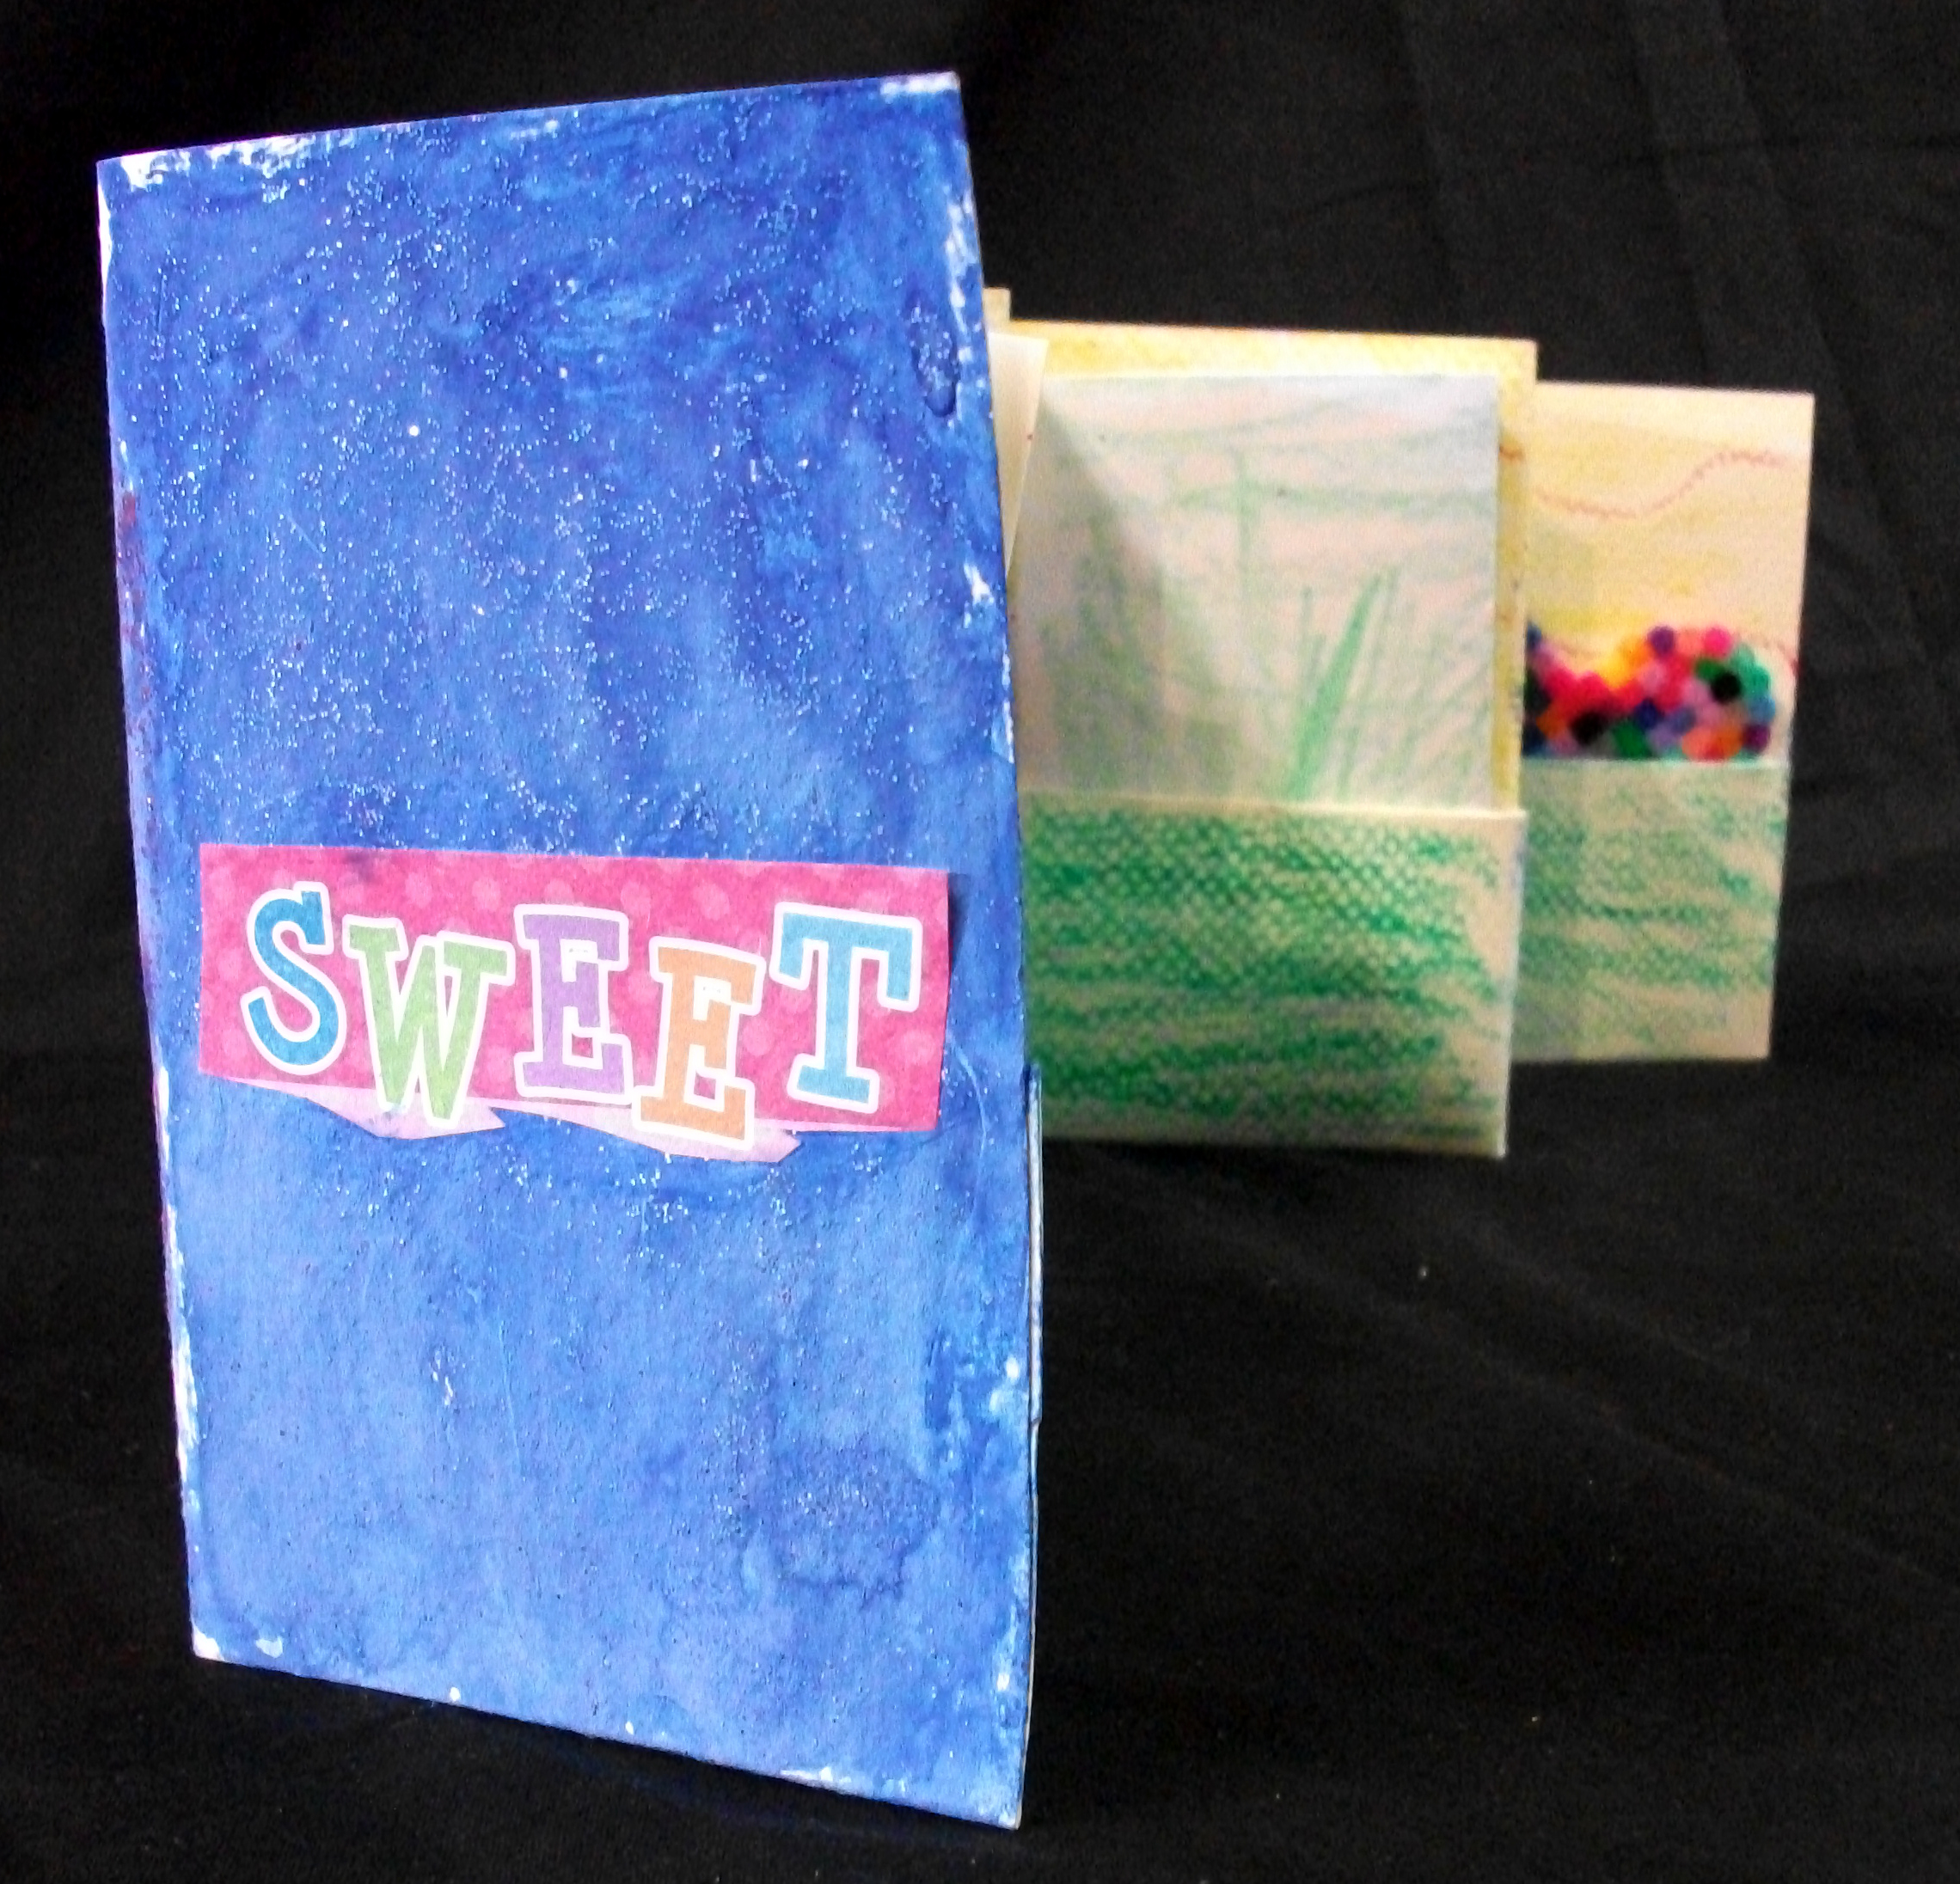 Lucy VanDemark,  Sweet,  Paper, Crayons, Mixed Media, Photos, 2012, Middleville, MI